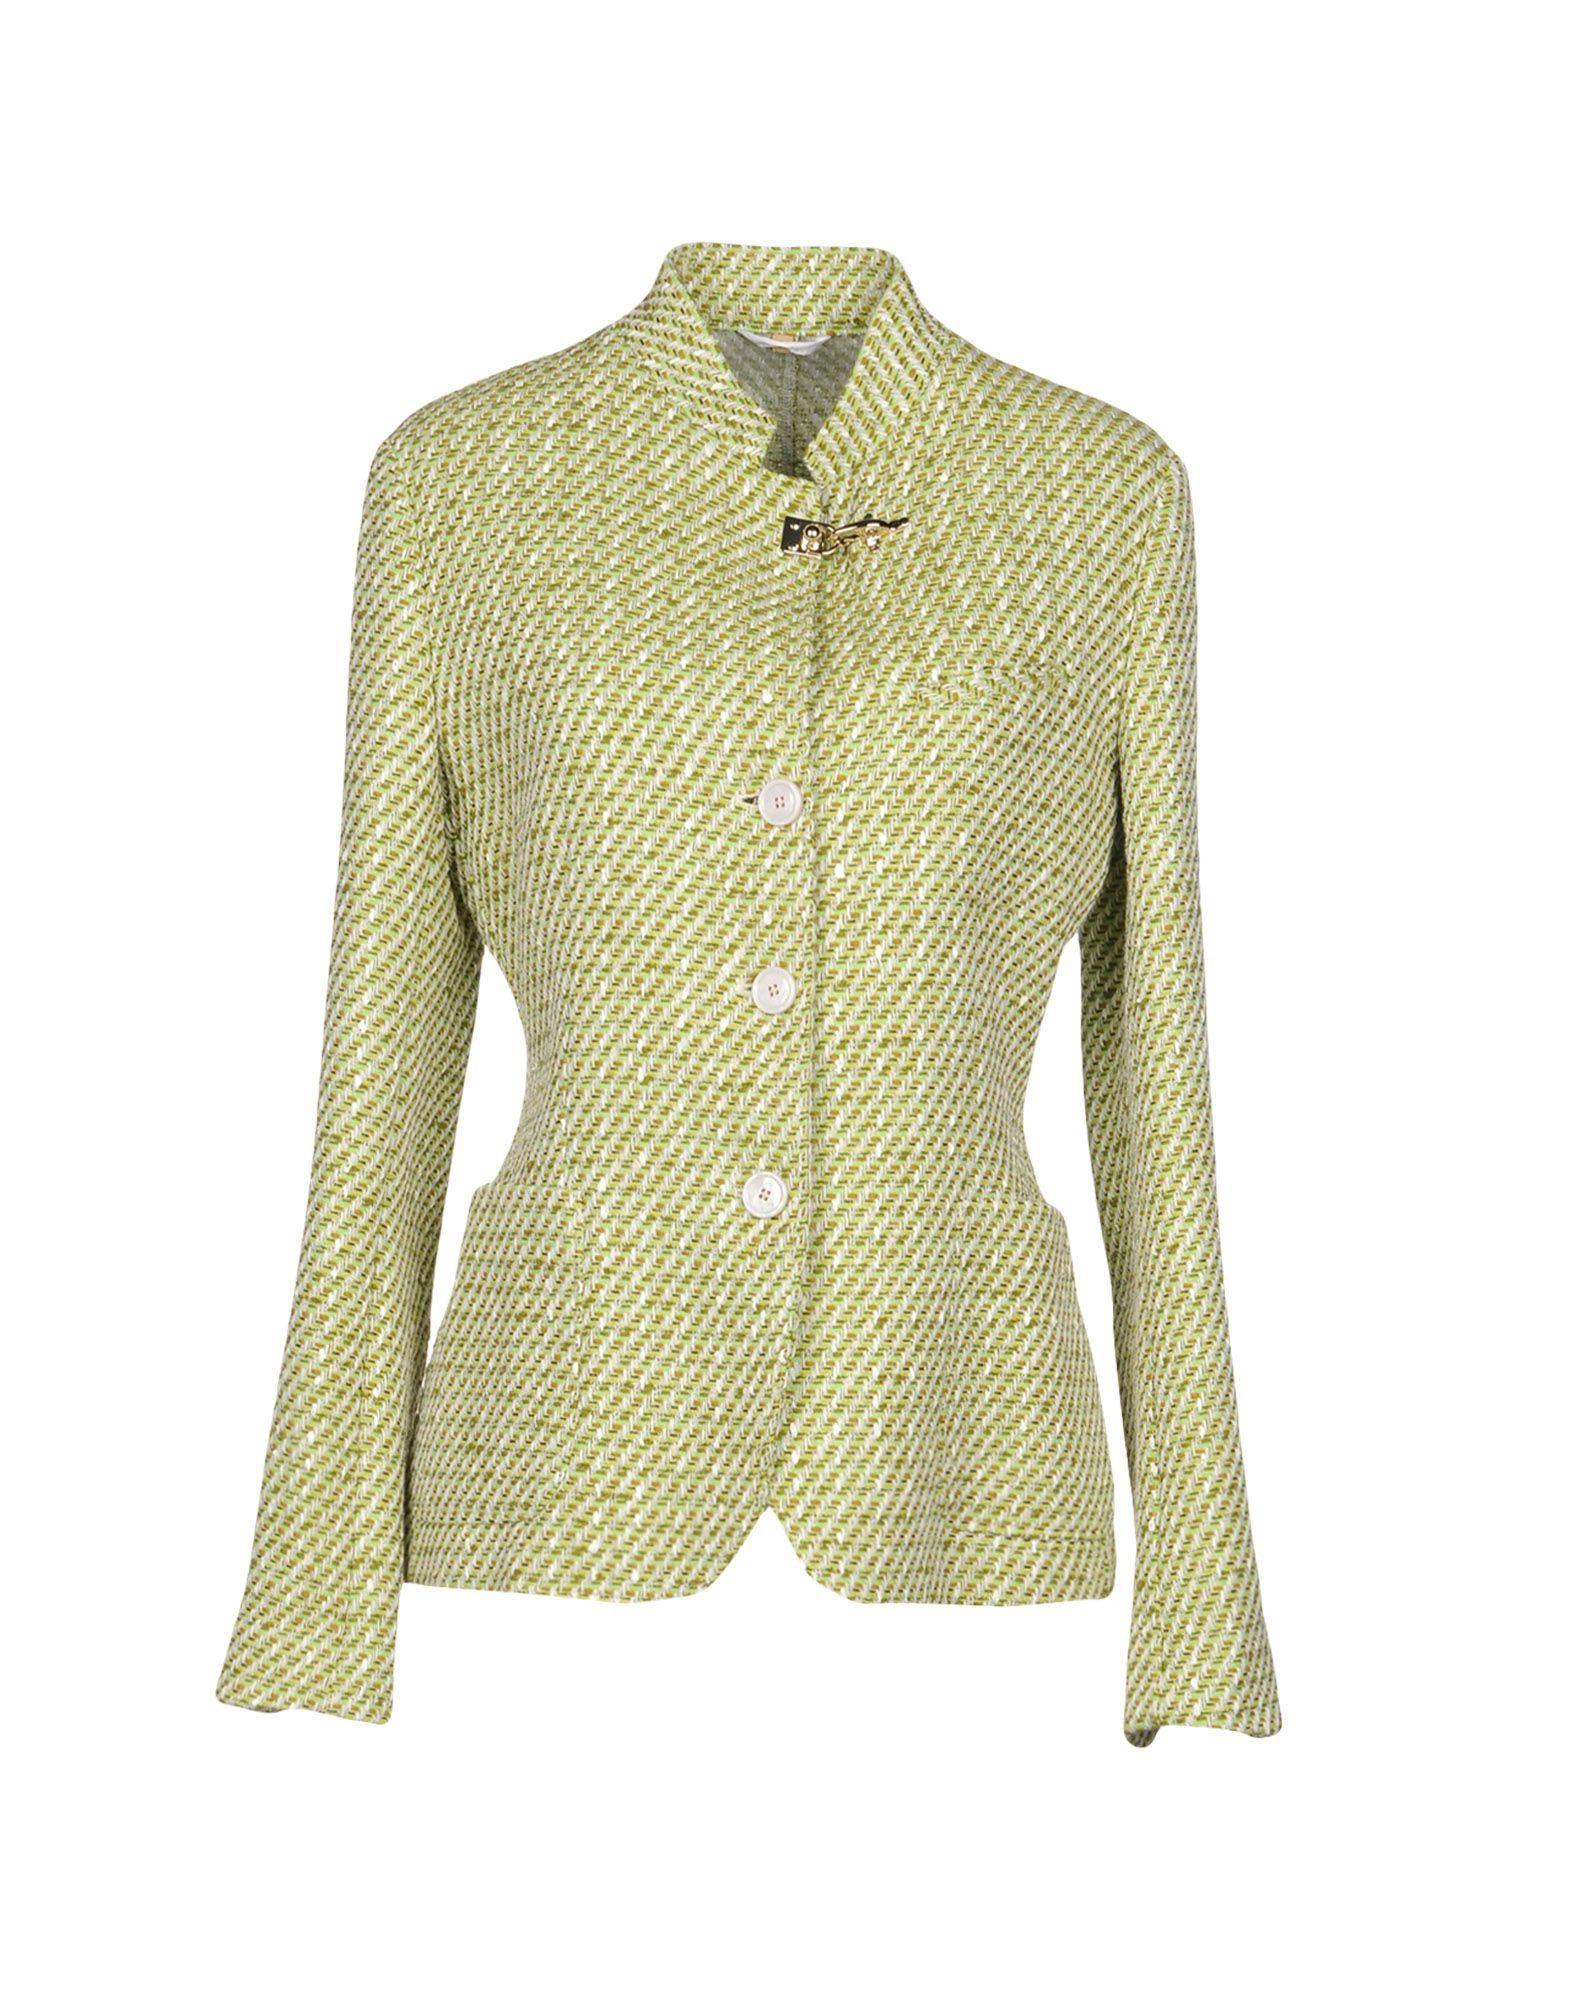 Fay Light Green Cotton Single Breasted Jacket